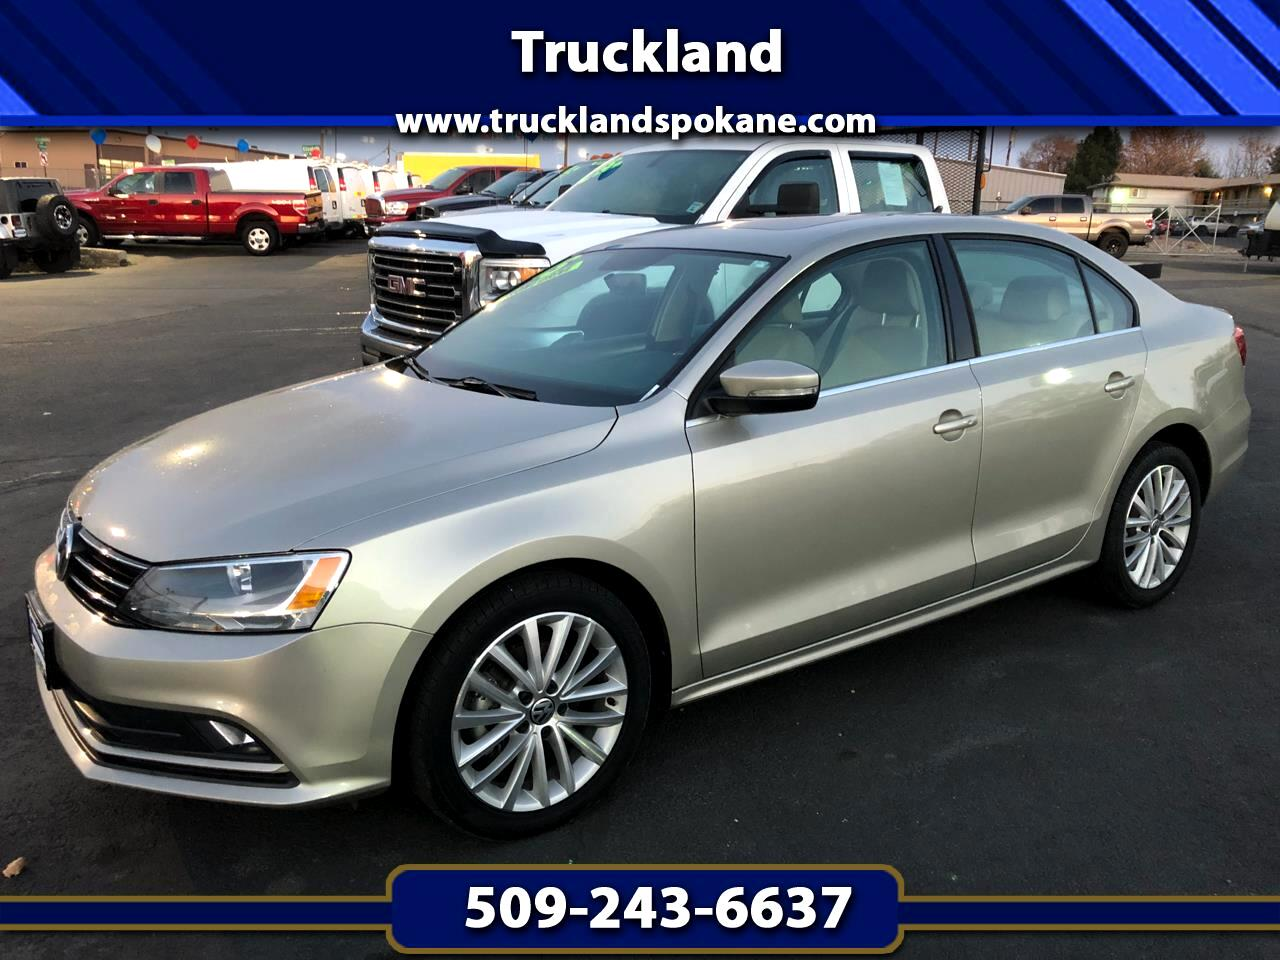 2015 Volkswagen Jetta Sedan 4dr Auto 1.8T SE w/Connectivity/Navigation PZEV